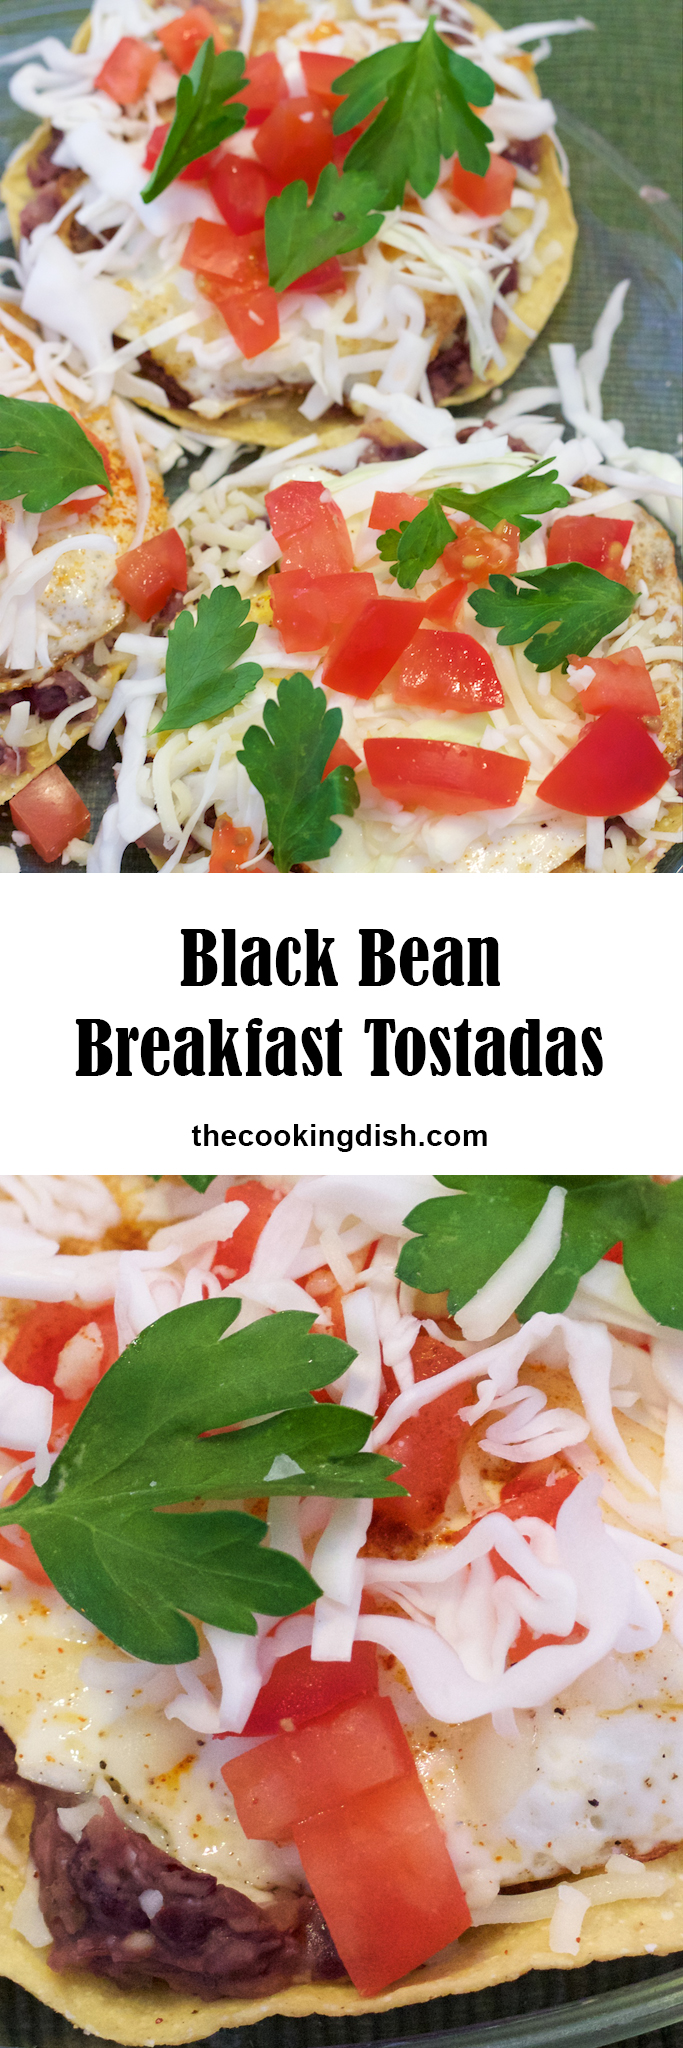 Black Bean Breakfast Tostadas are super fast and easy! And they're delicious!